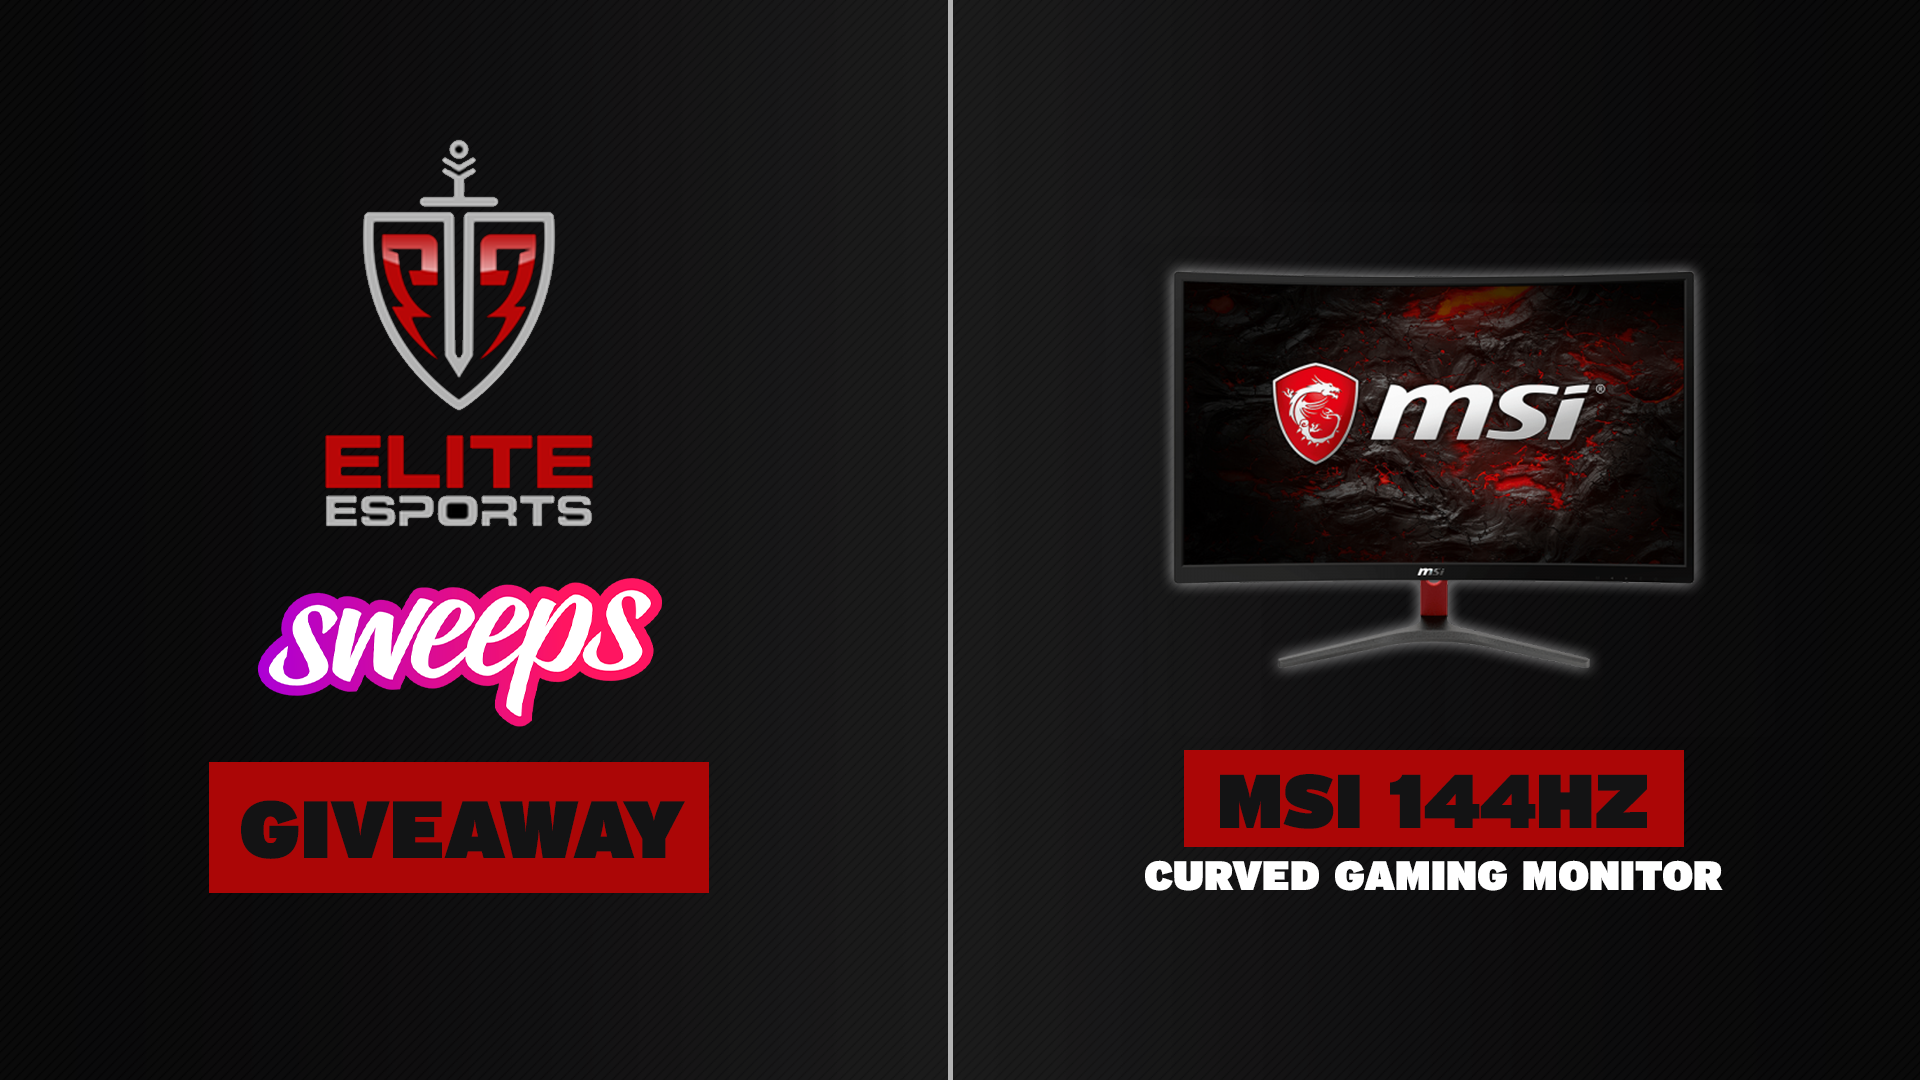 Elite Esports X Sweeps Msi 144hz Curved Gaming Monitor Giveaway